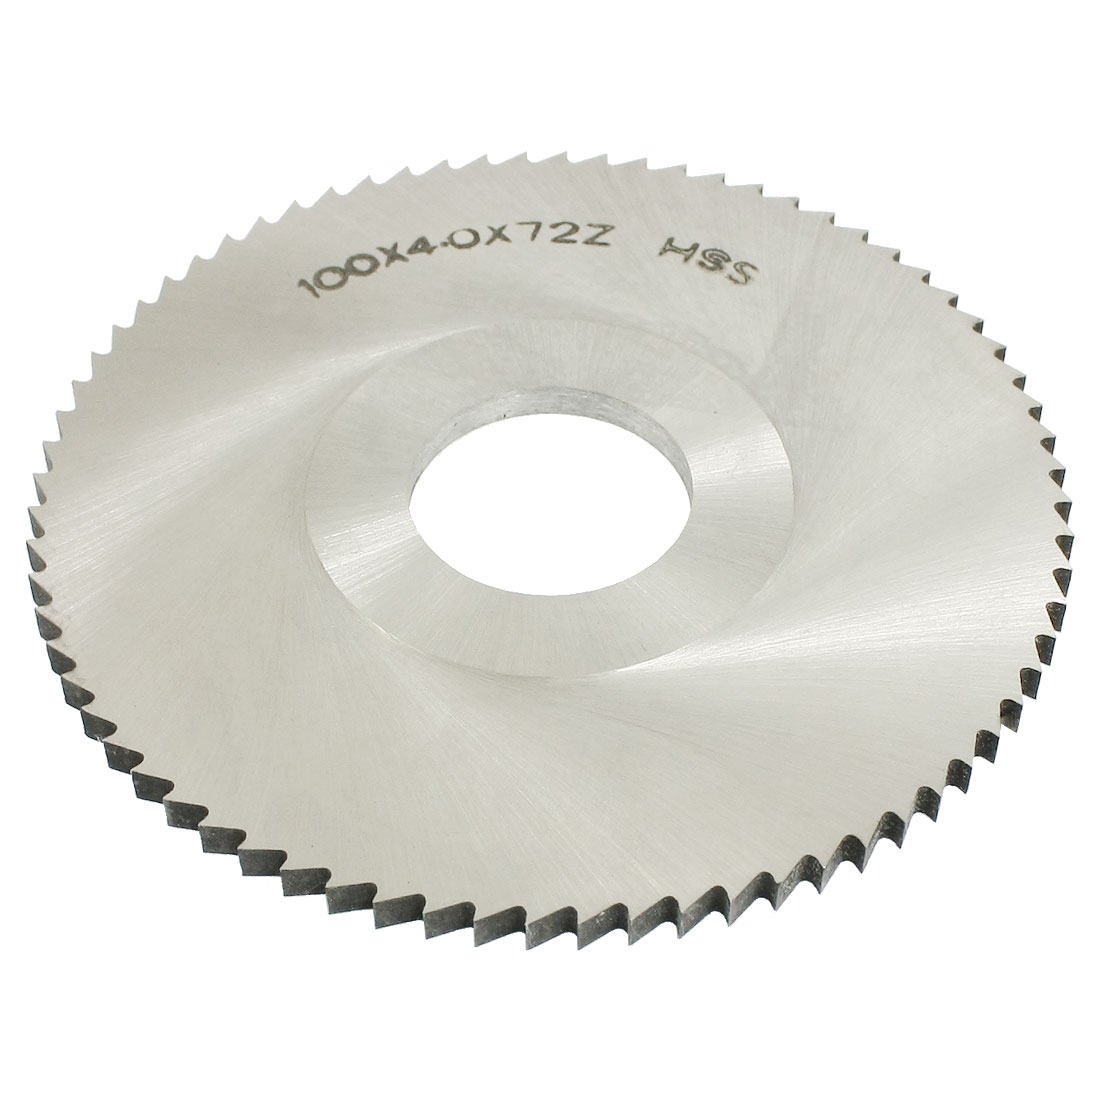 100mm x 4mm x 27mm 72T Milling Slitting Slotting Saw Mill Cutter